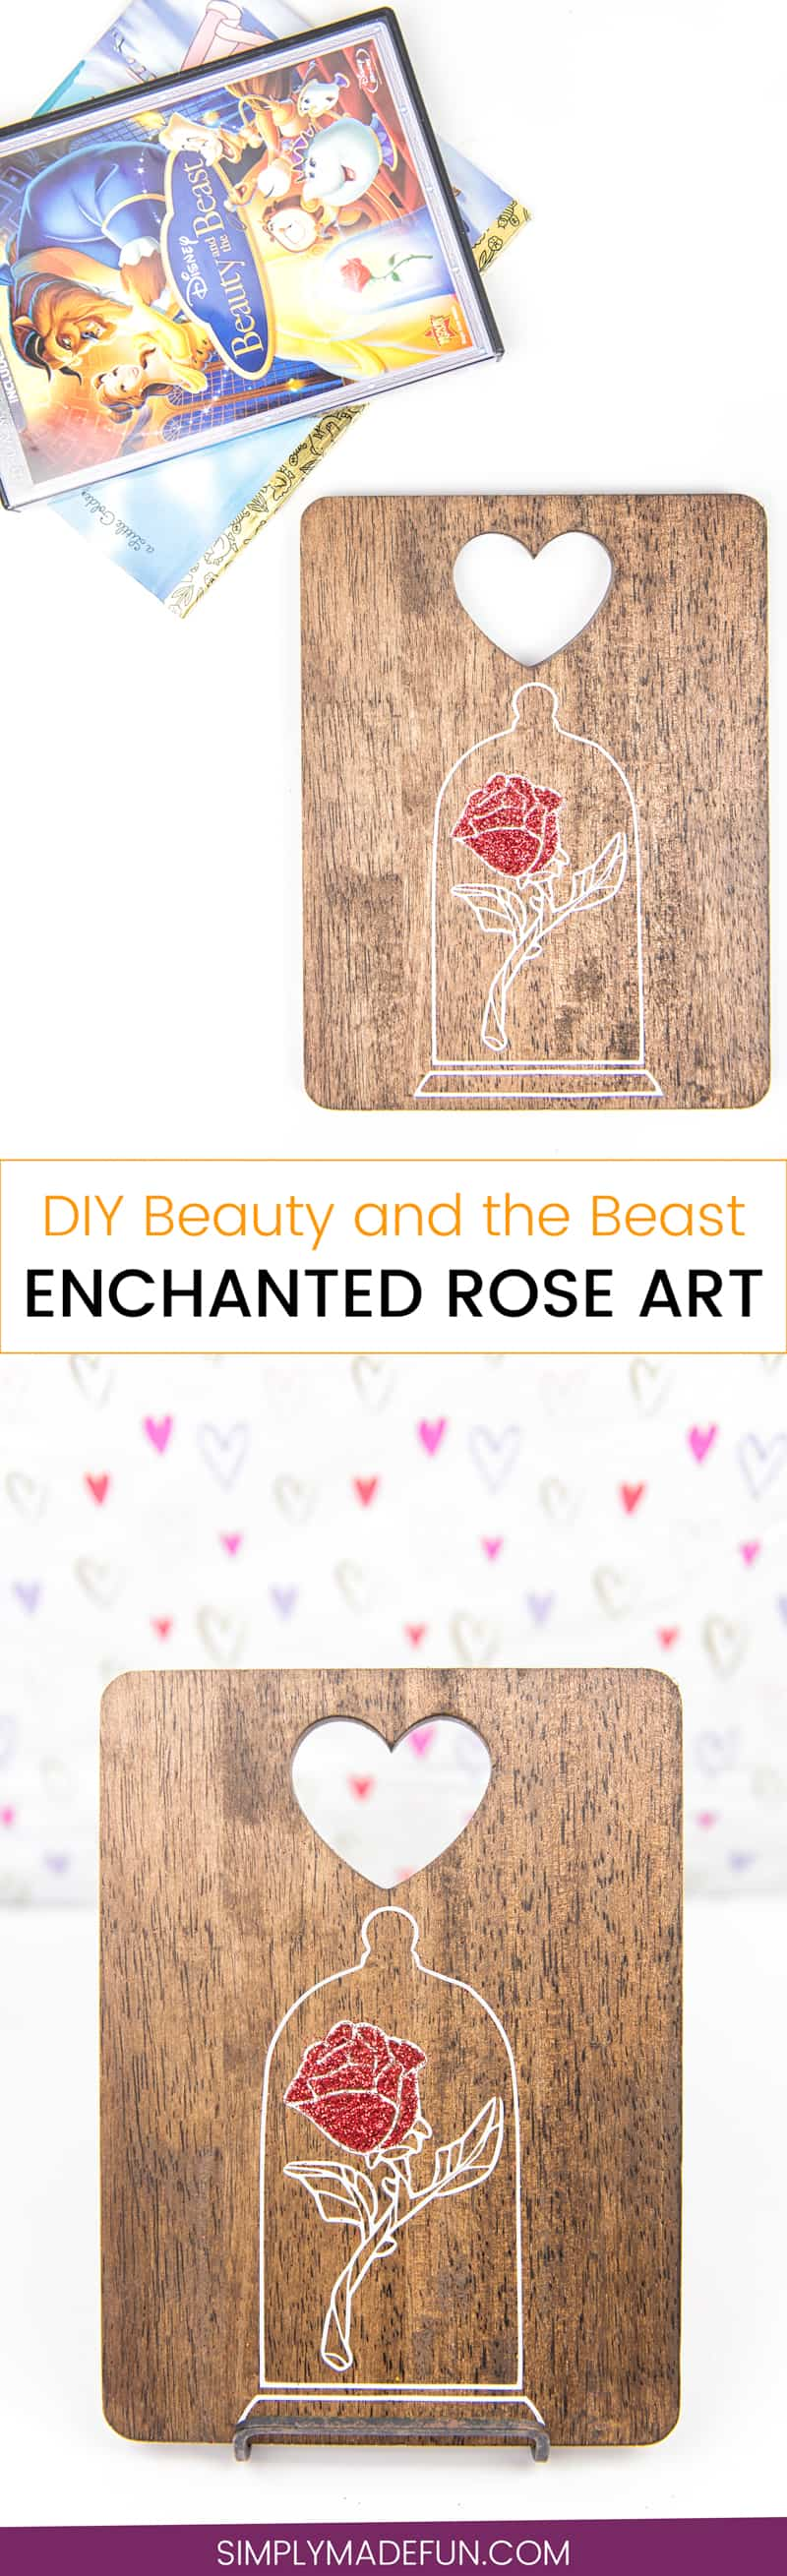 Beauty and the Beast Enchanted Rose Art   Disney Crafts   Silhouette Cameo Crafts   Vinyl Crafts   Beauty and the Beast   Belle Crafts